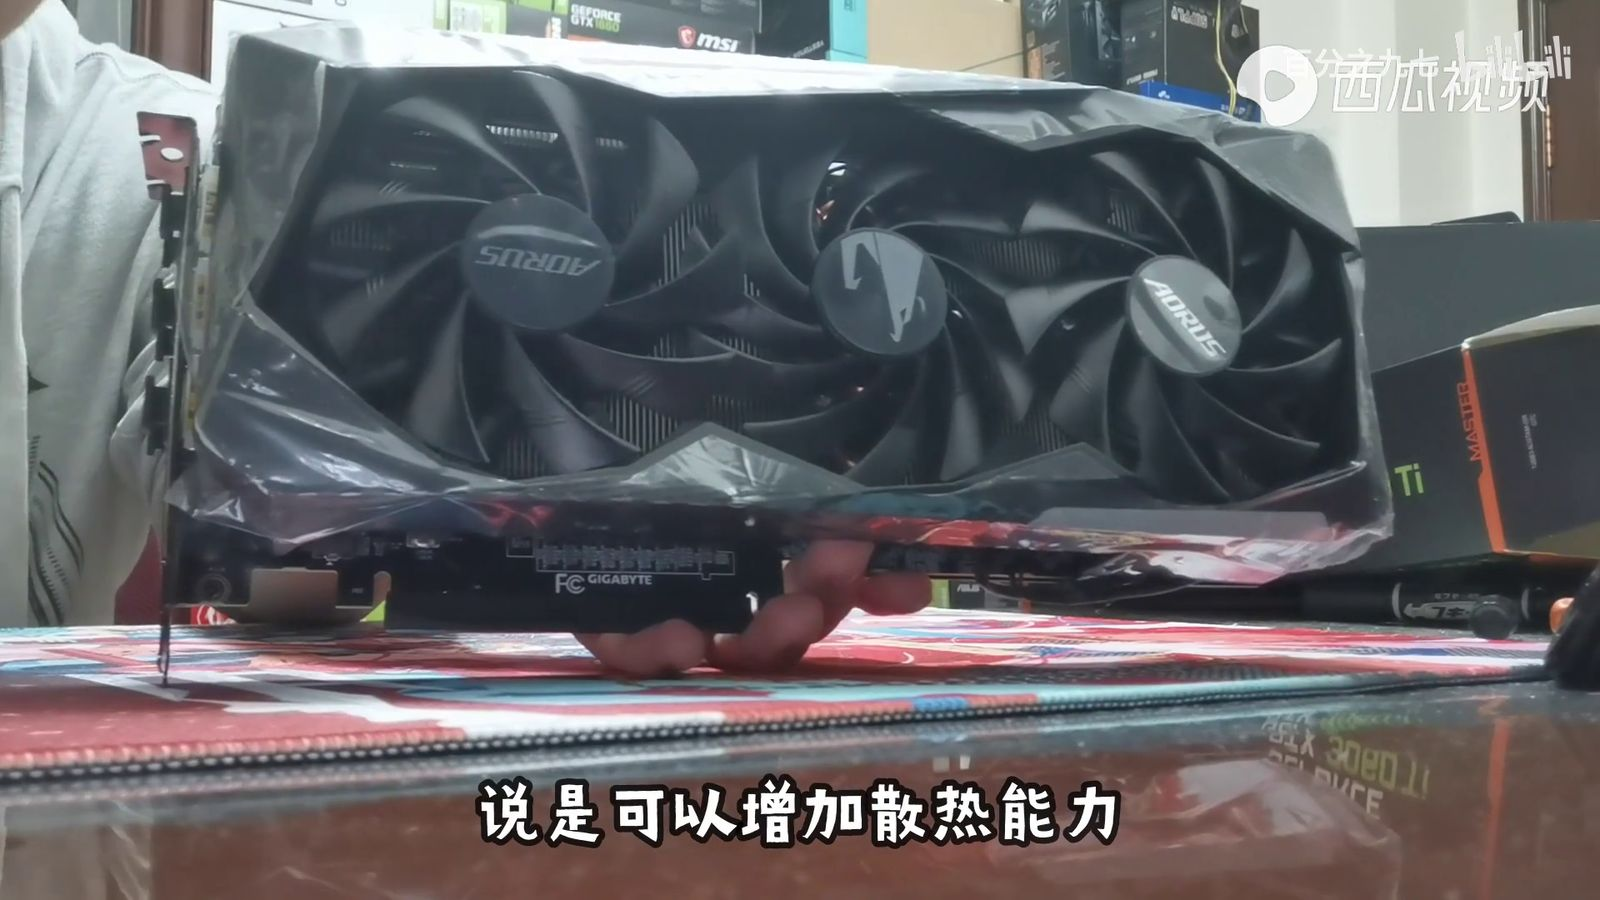 Unboxing of all Gigabyte GeForce RTX 3060 Ti graphics cards leaks out – VideoCardz.com